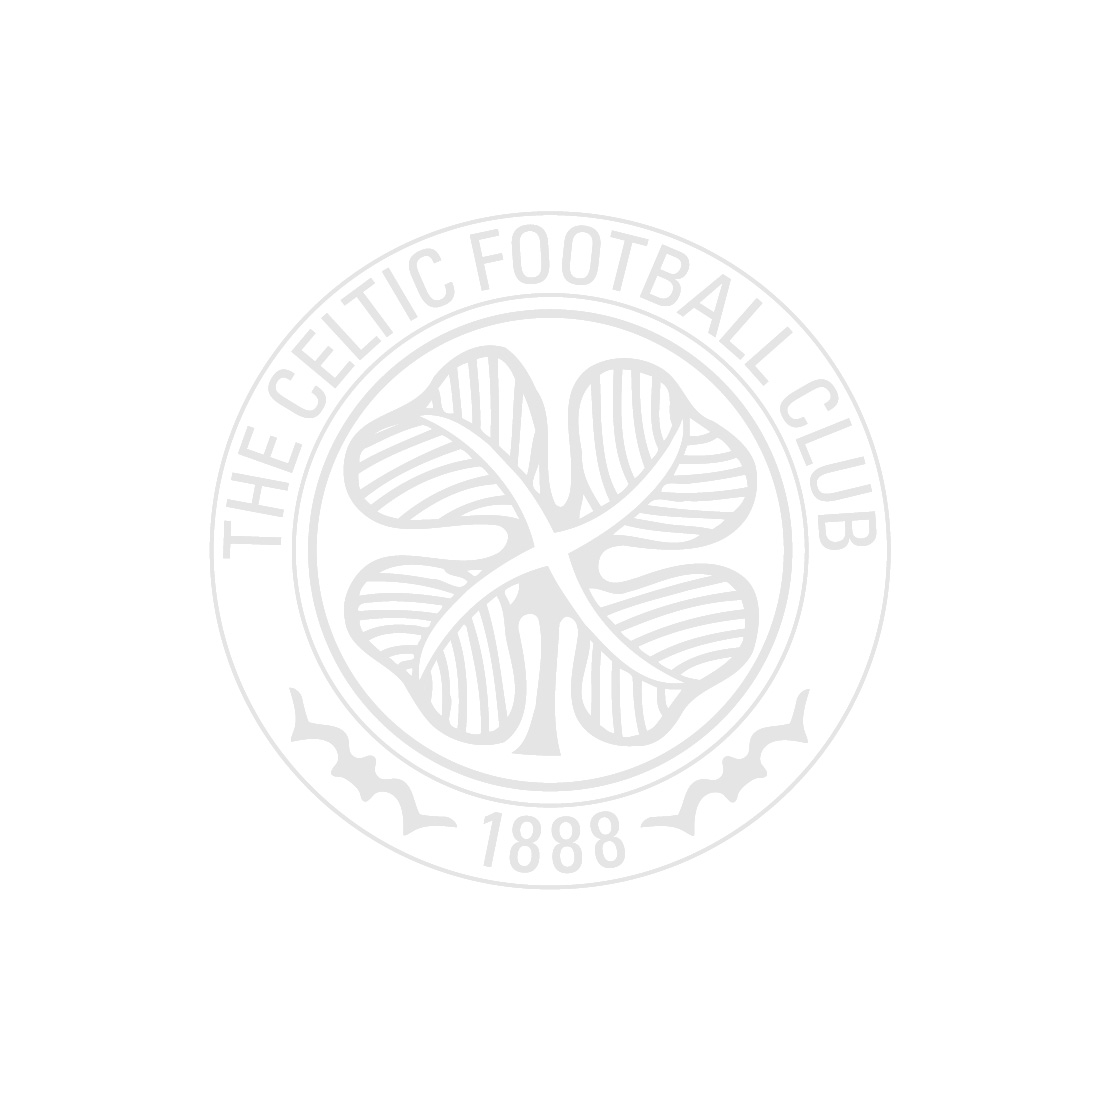 Celtic FC Hooped Text Wallet